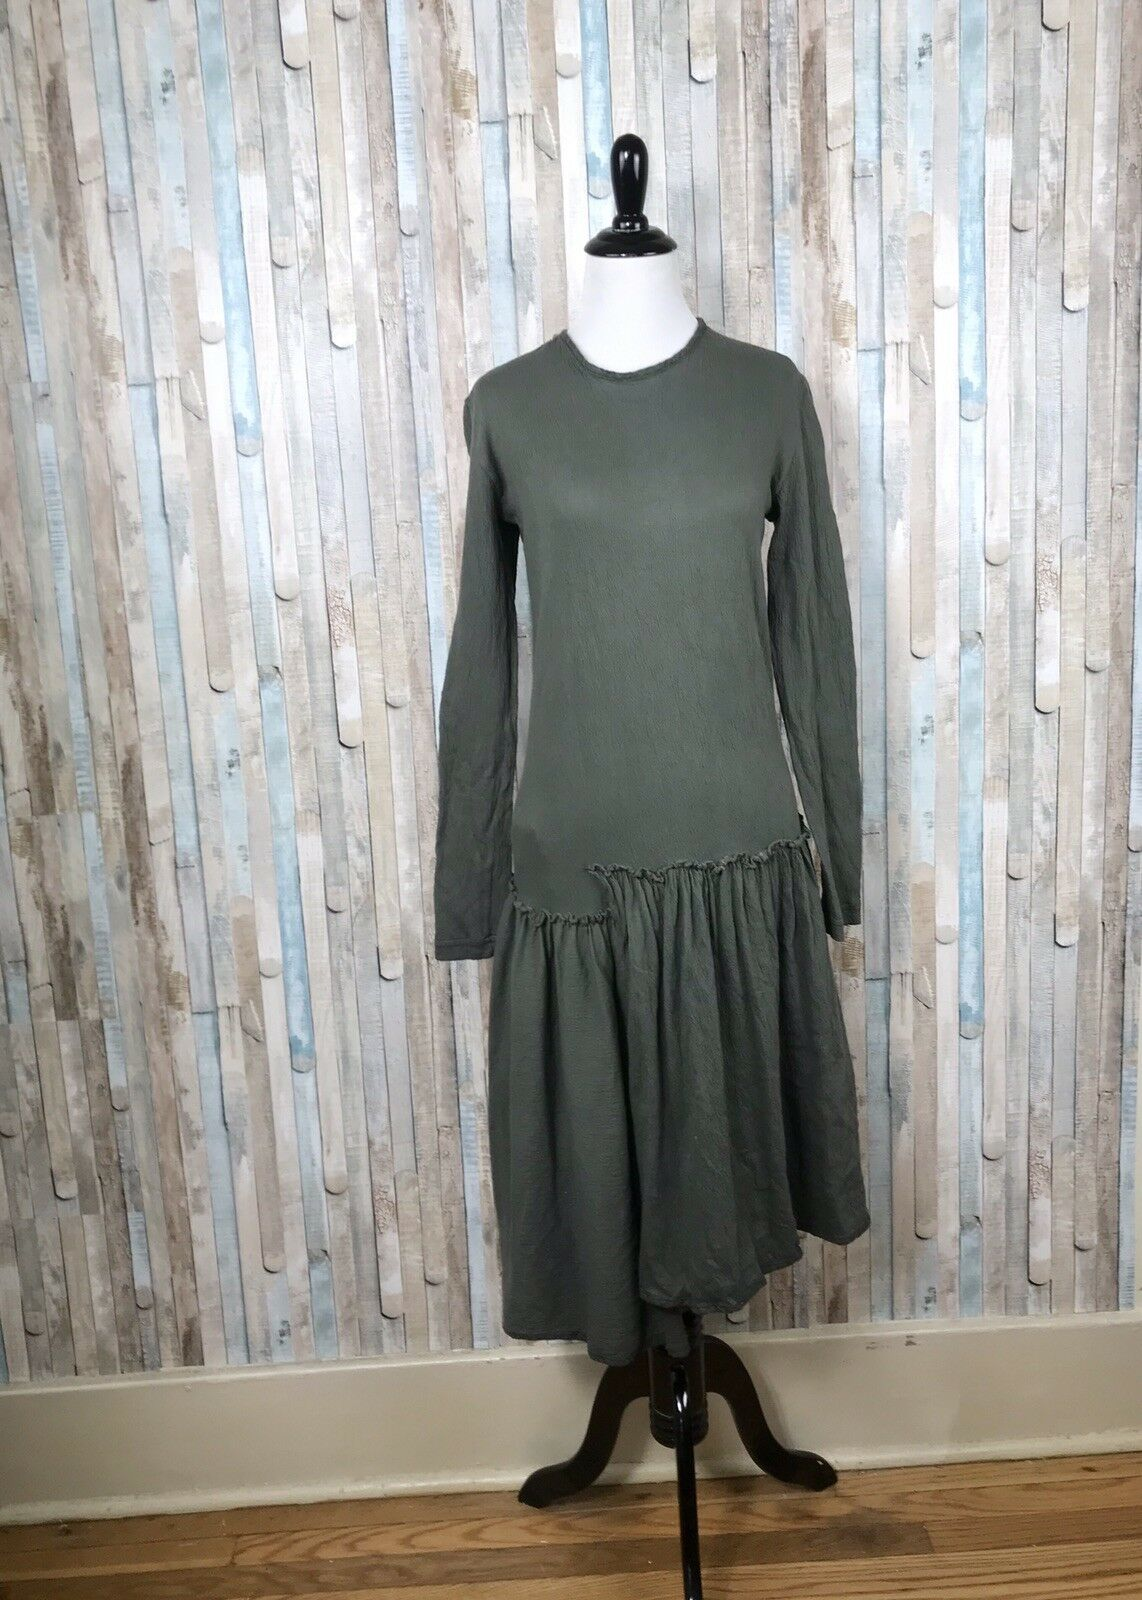 Cynthia Ashby S Olive Olive Olive Green Layered Asymmetric Knit Dress Lagenlook Art To Wear 4d725e